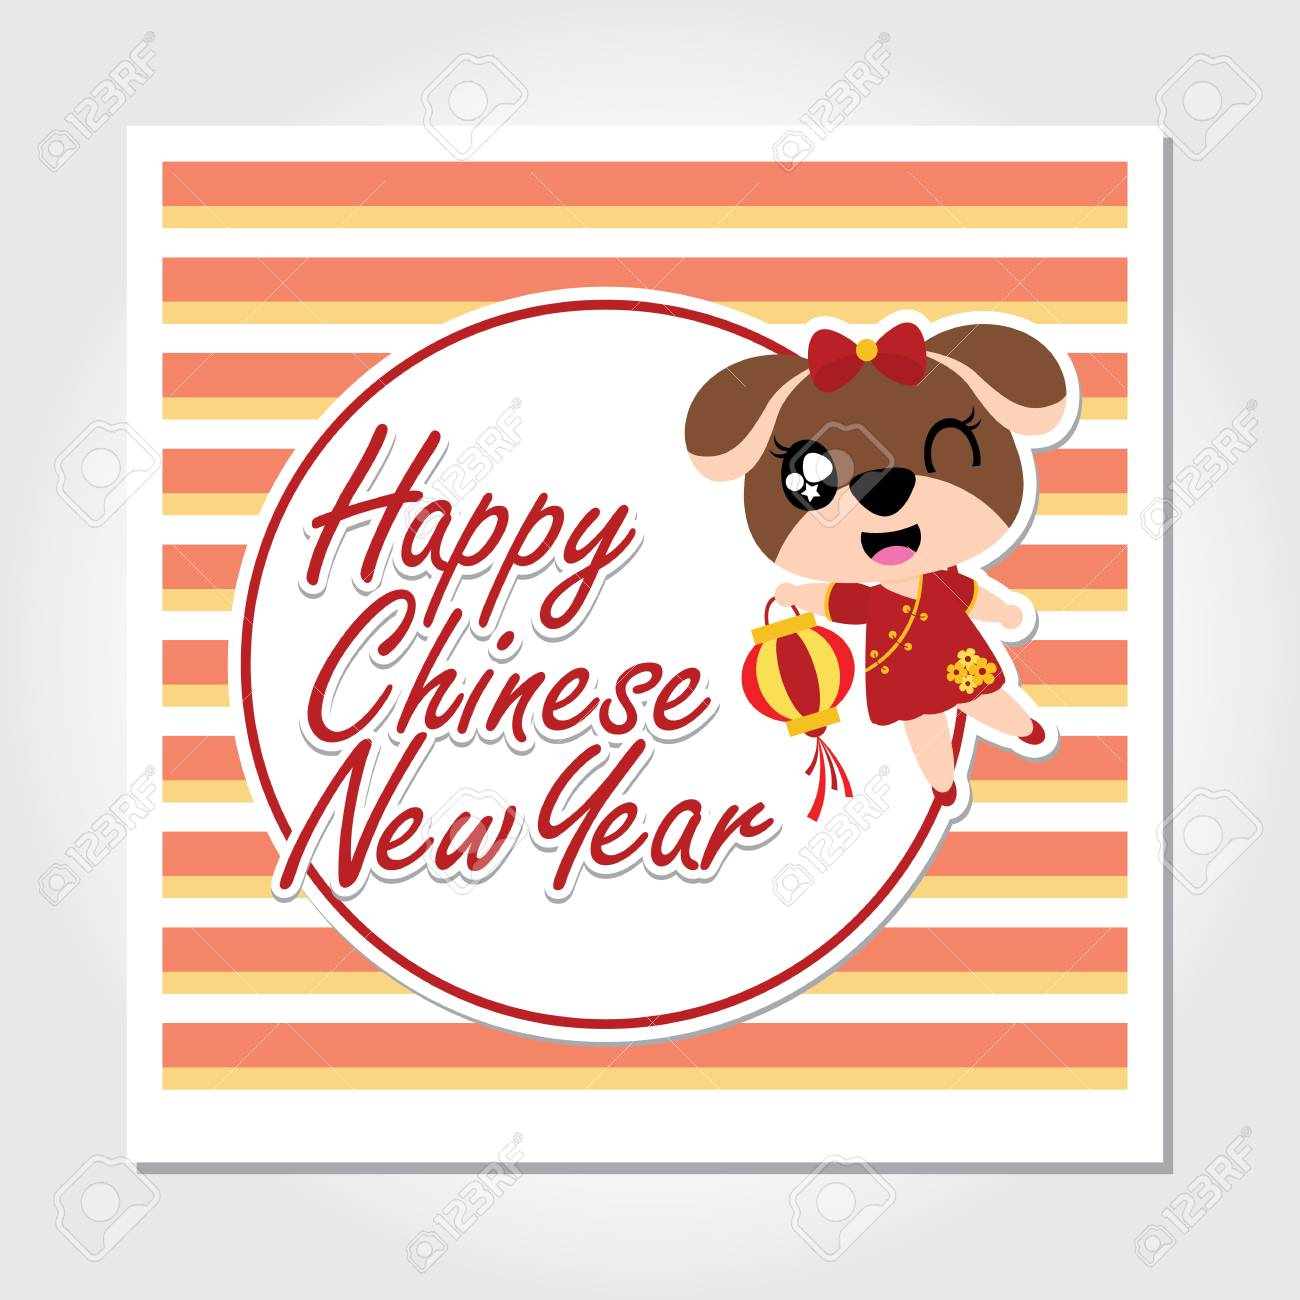 Cute Puppy Brings Lantern Vector Cartoon Illustration For Chinese Royalty Free Cliparts Vectors And Stock Illustration Image 90510295